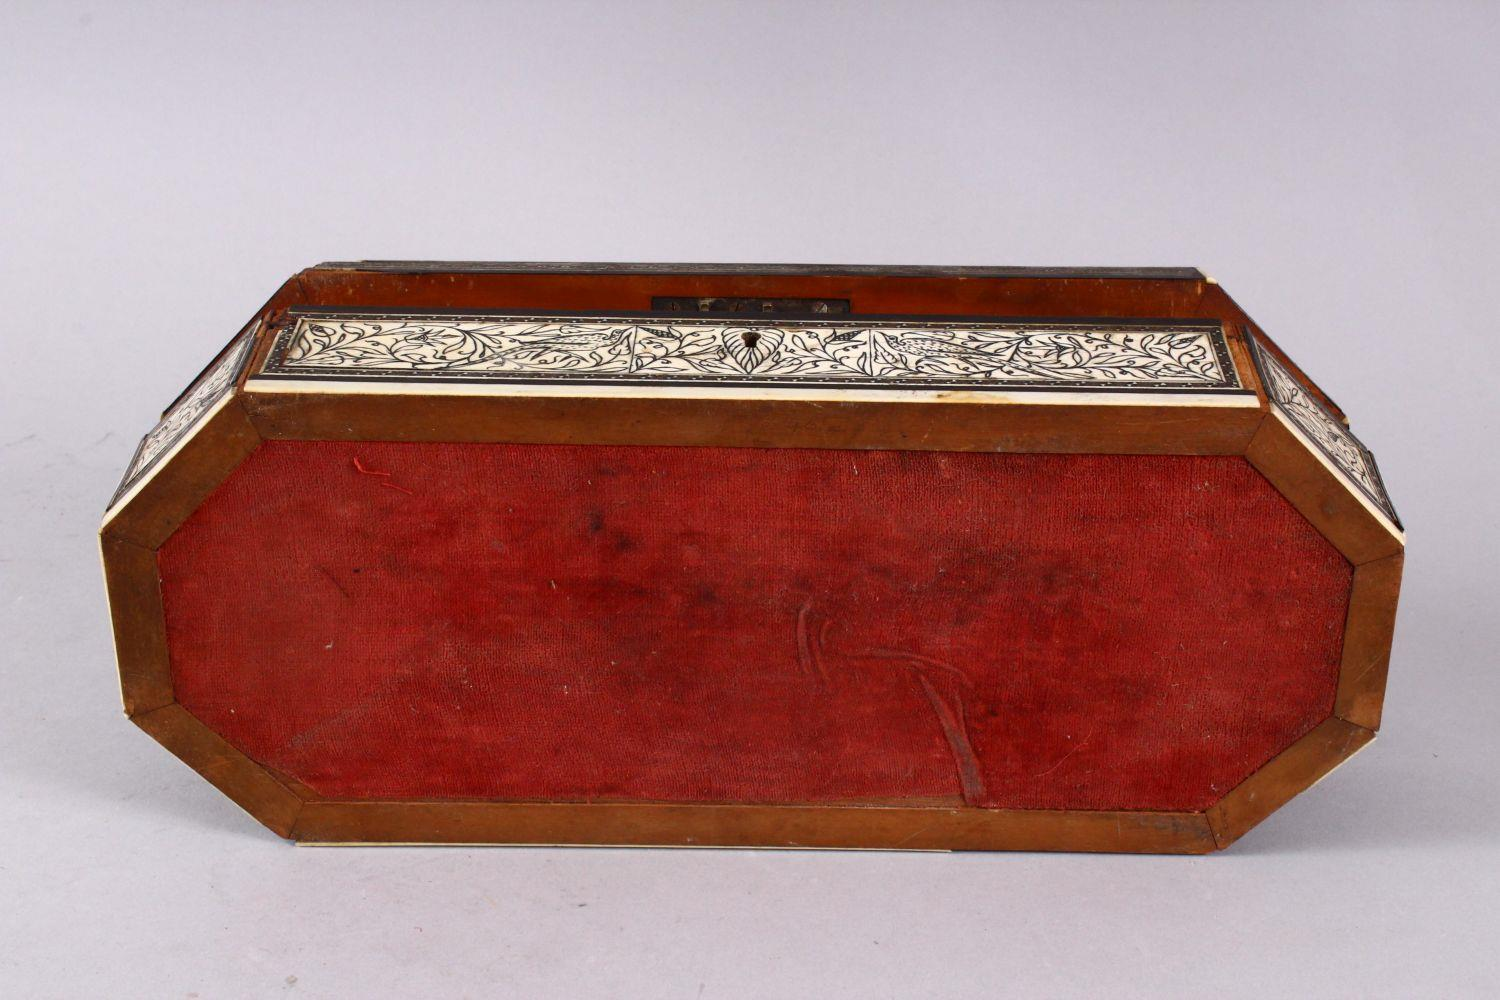 AN 18TH CENTURY INDIAN GOA INLAID IVORY LIDDED BOX, the box with a top ivory inlaid slither carved - Image 4 of 4